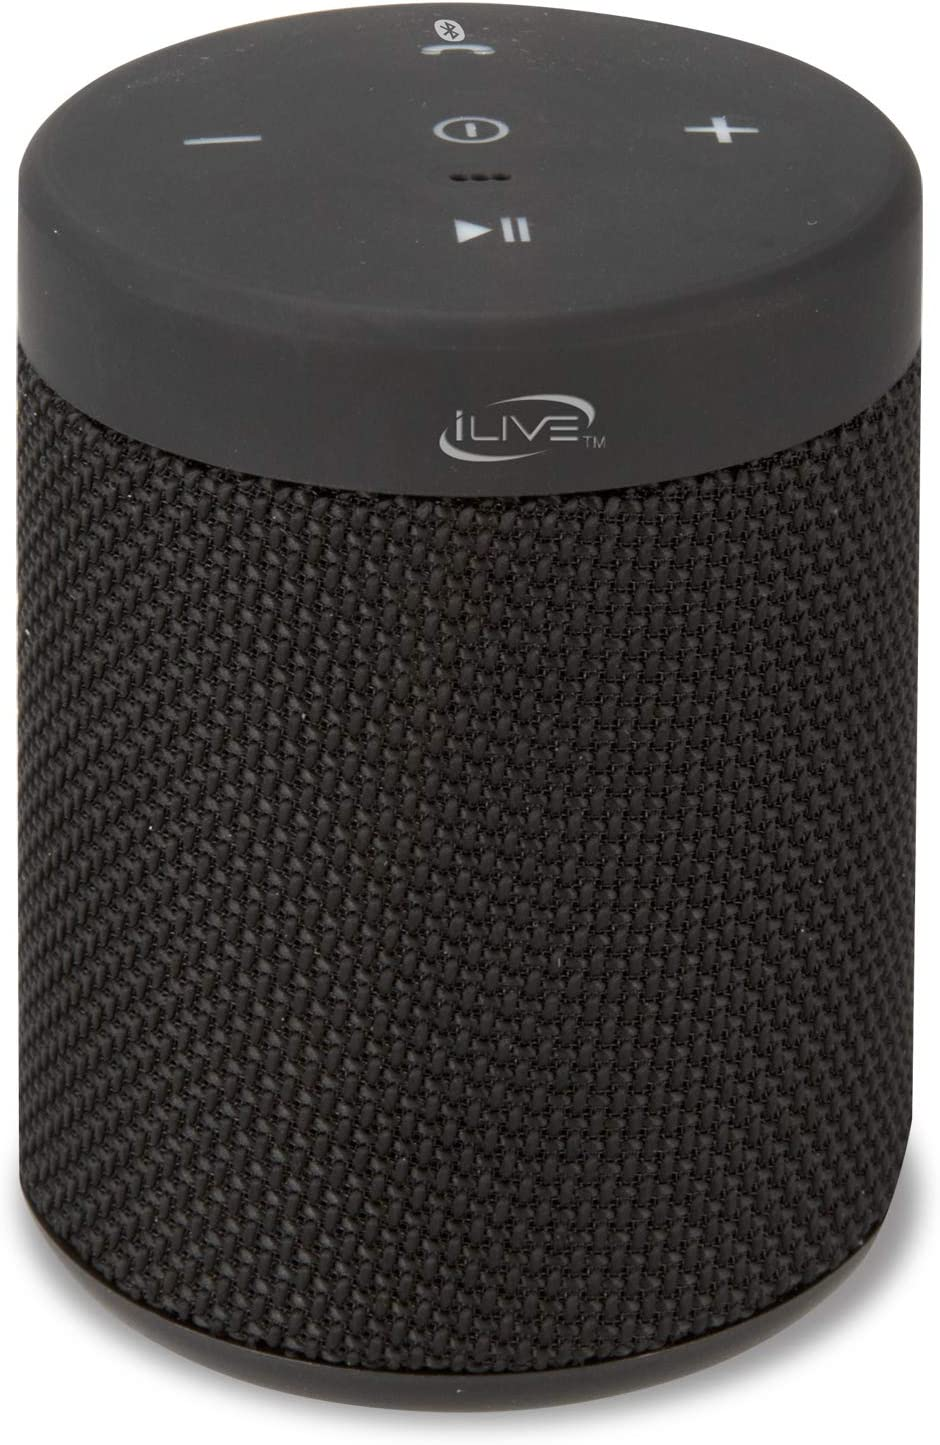 Amazon Com Ilive Waterproof Fabric Wireless Speaker 2 56 X 2 56 X 3 4 Inches Built In Rechargeable Battery Black Isbw108b Home Audio Theater